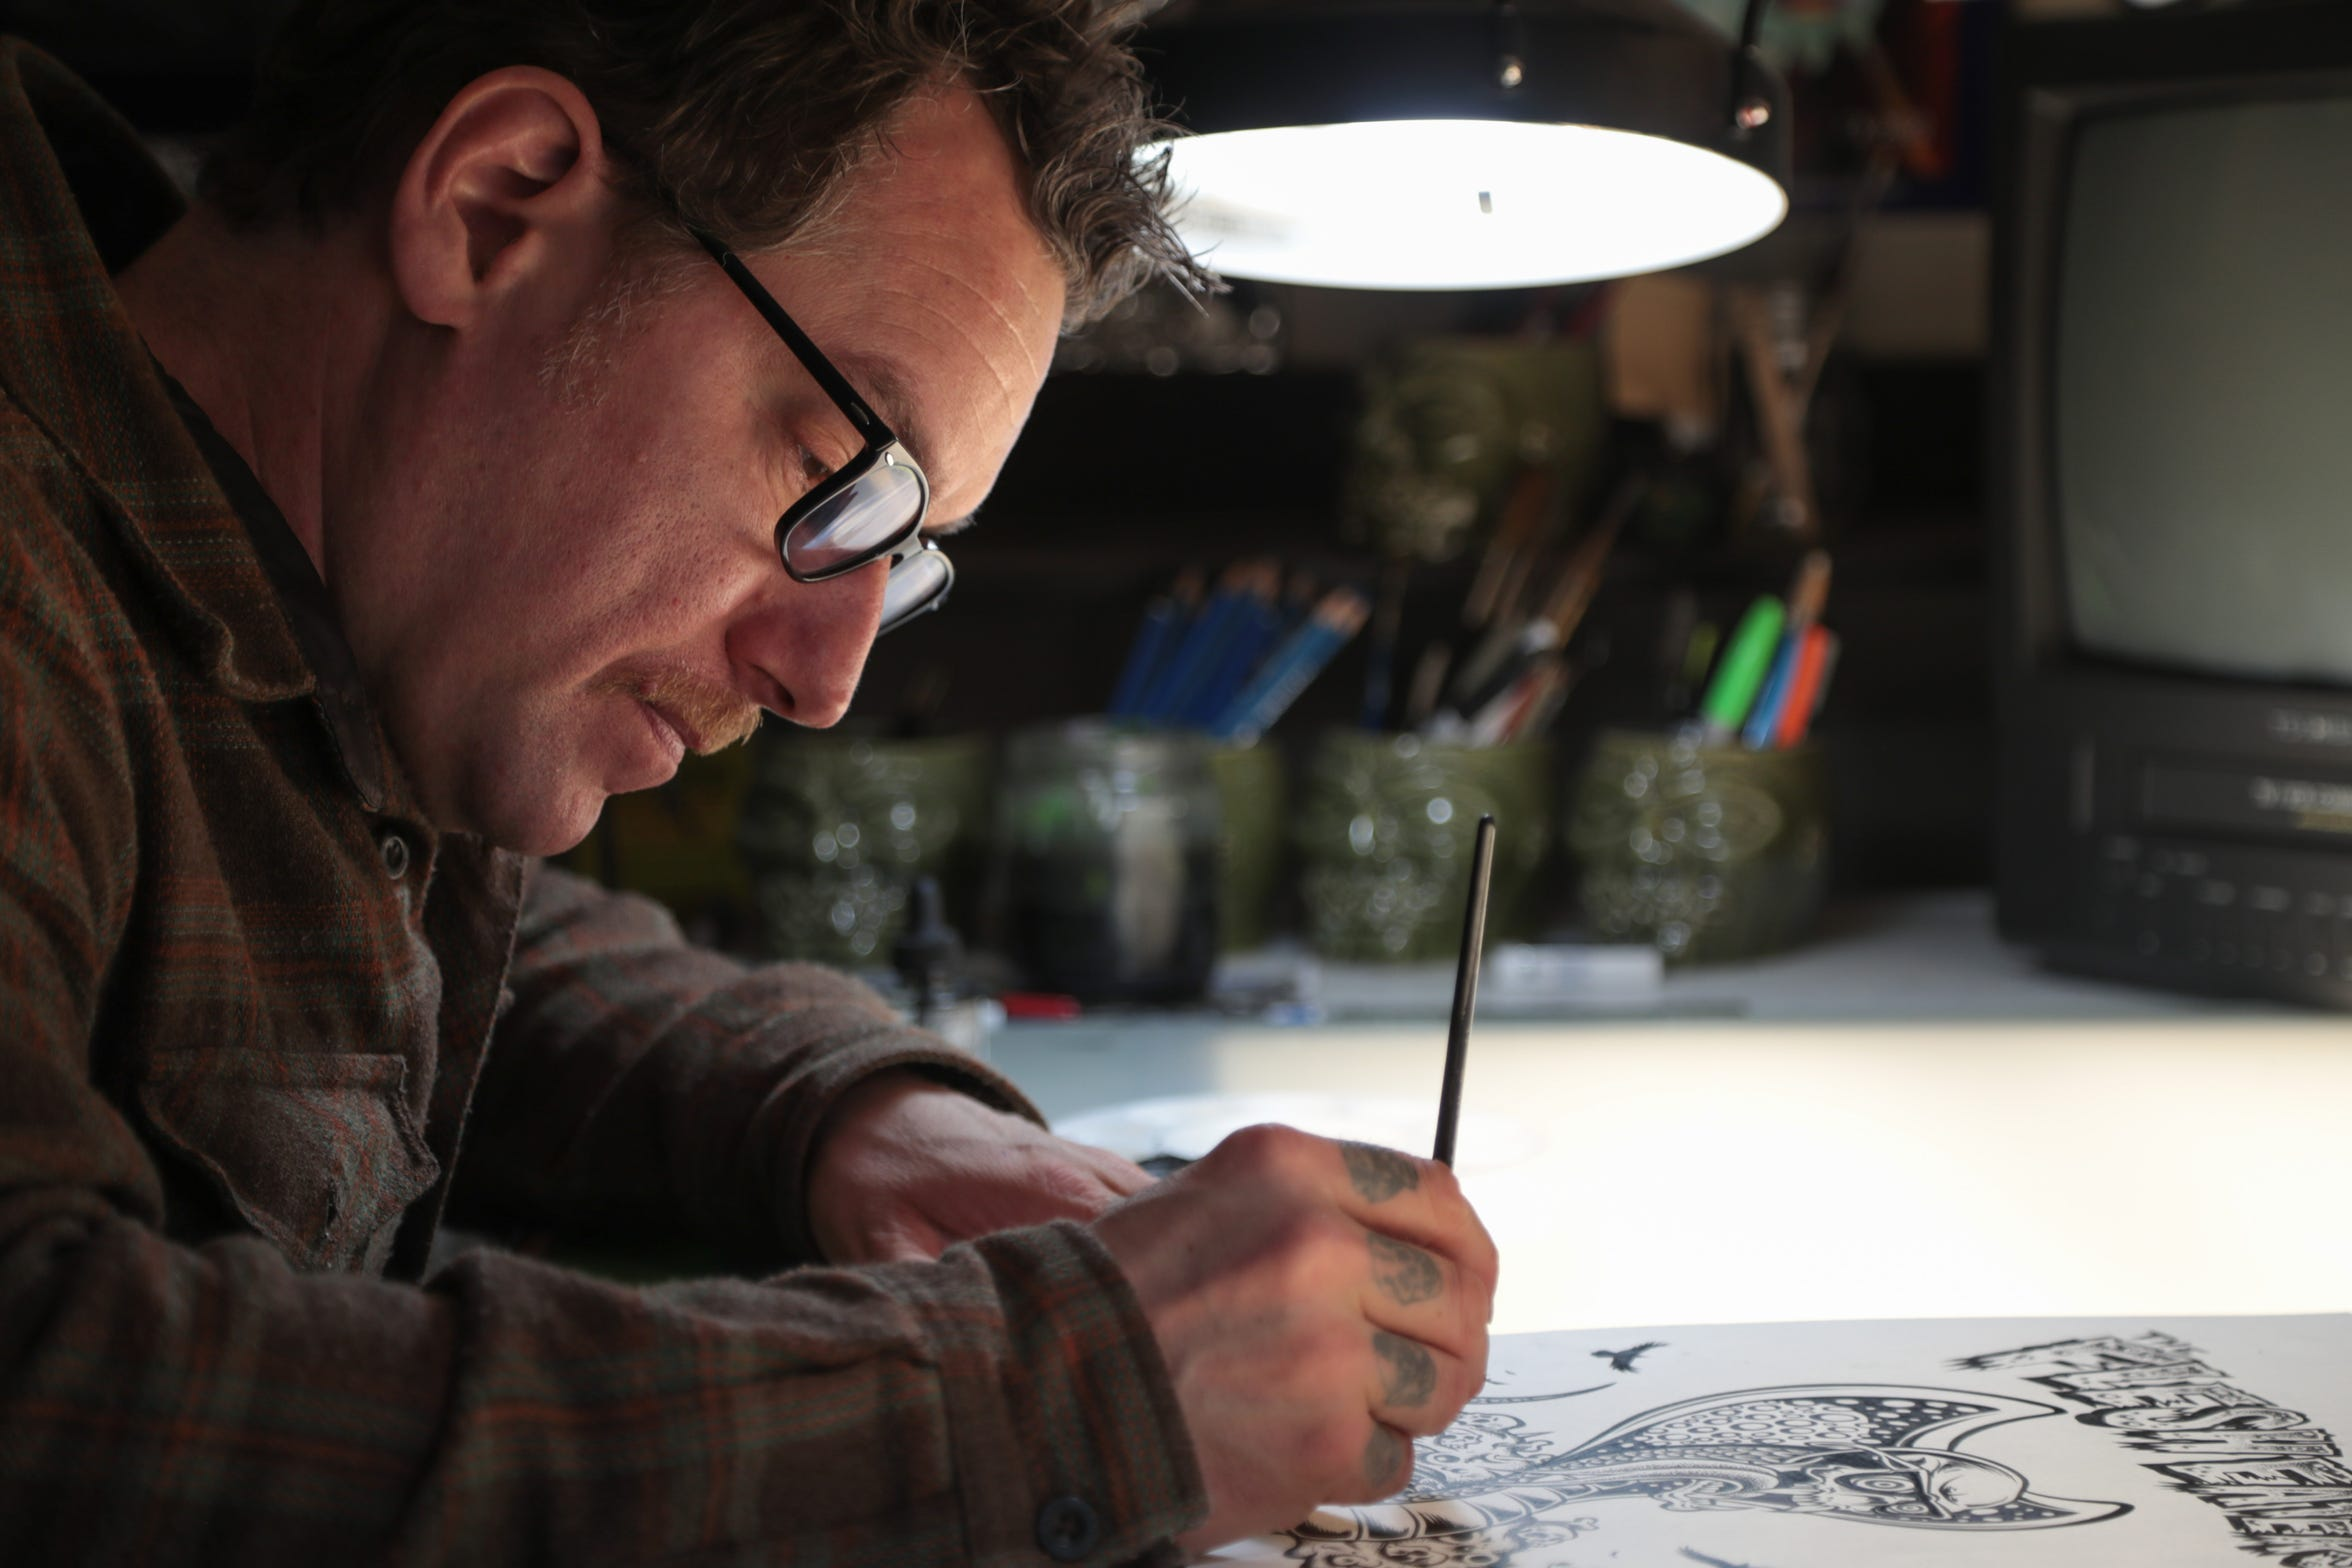 Artist Donny Gillies, photographed working in his studio in Palm Desert, has become a leading artist of pinball game designs, Palm Desert, Calif., February 13, 2019.